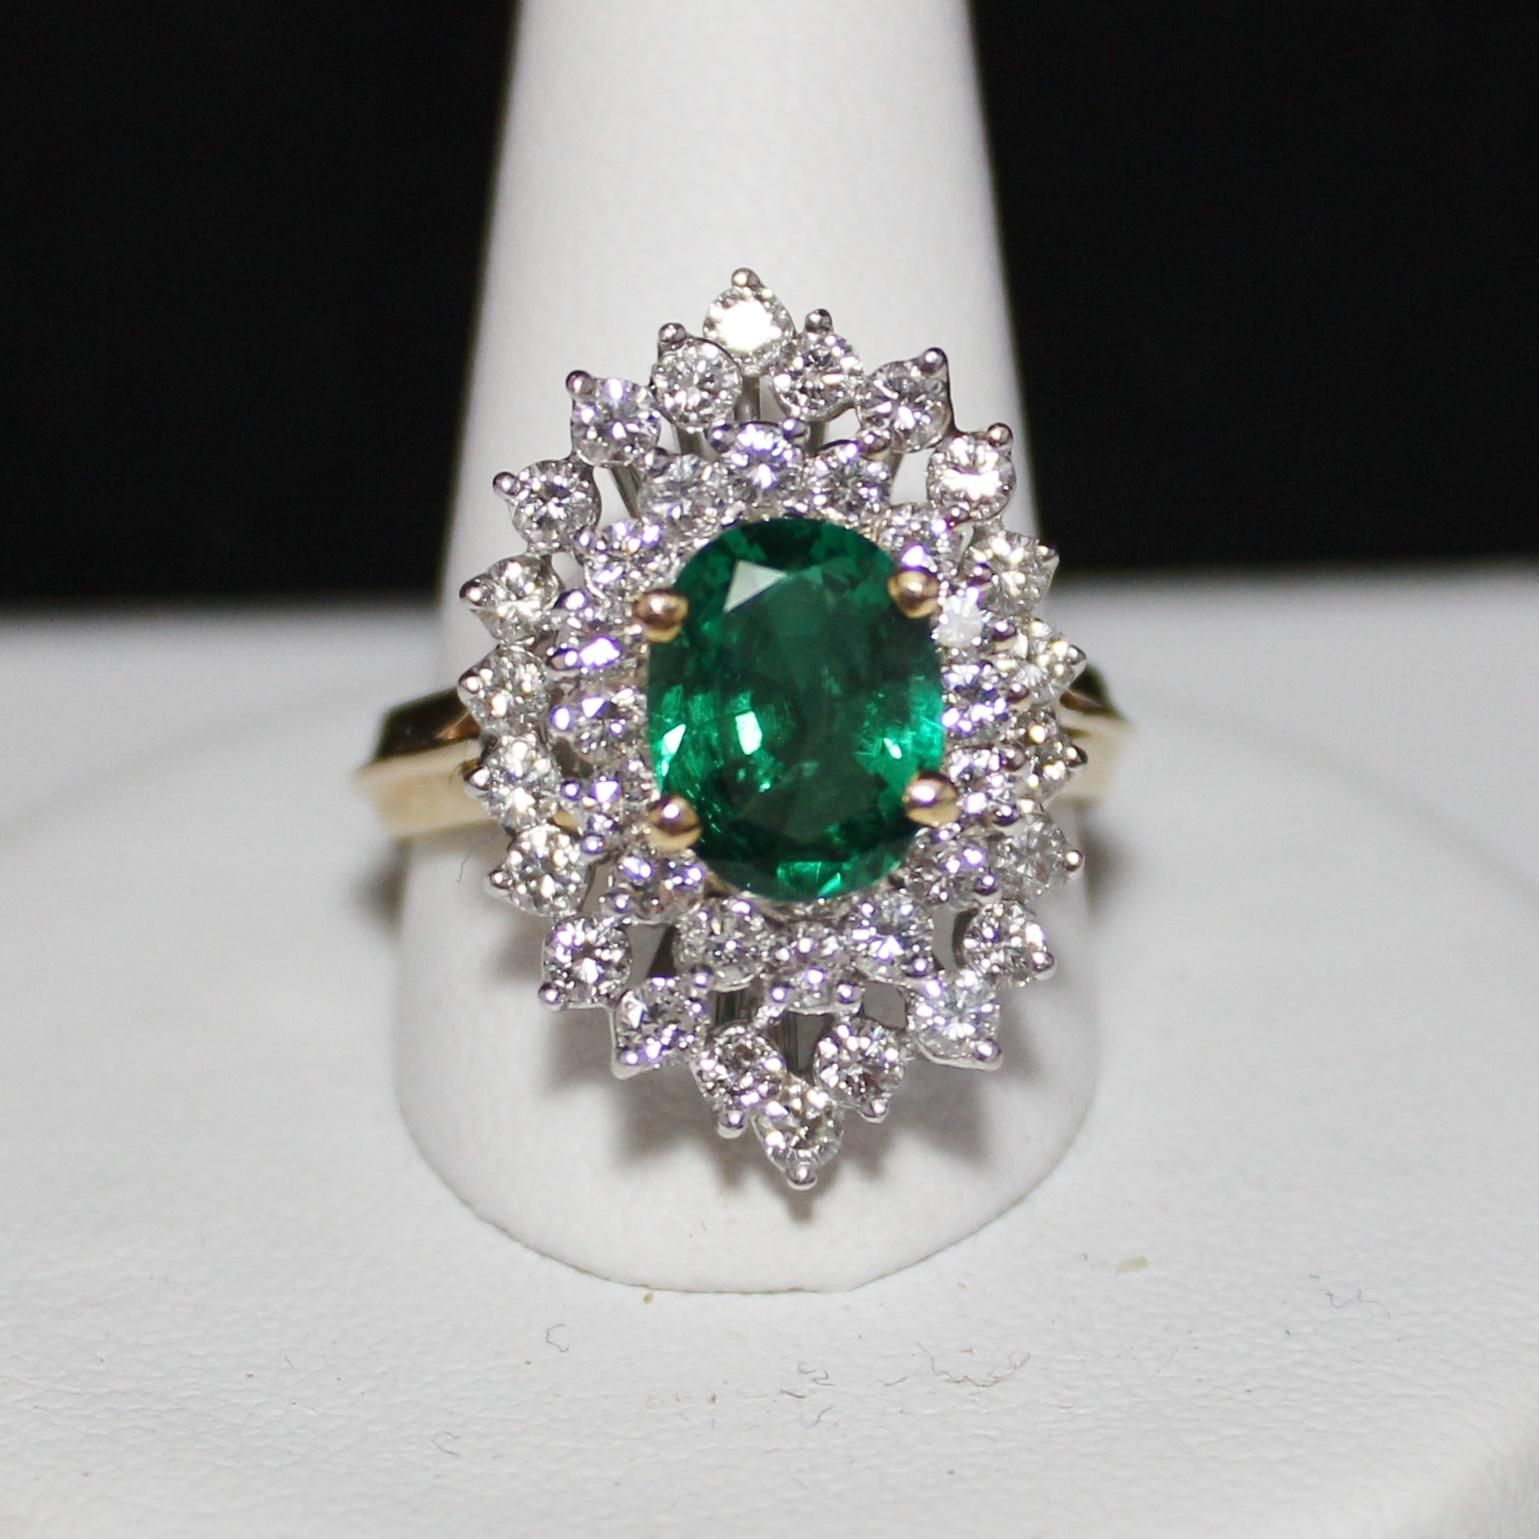 Offered today is a this absolutely elegant and gorgeous estate ring. It is an Emerald Diamond ring in 18k yellow gold with white gold prongs. The